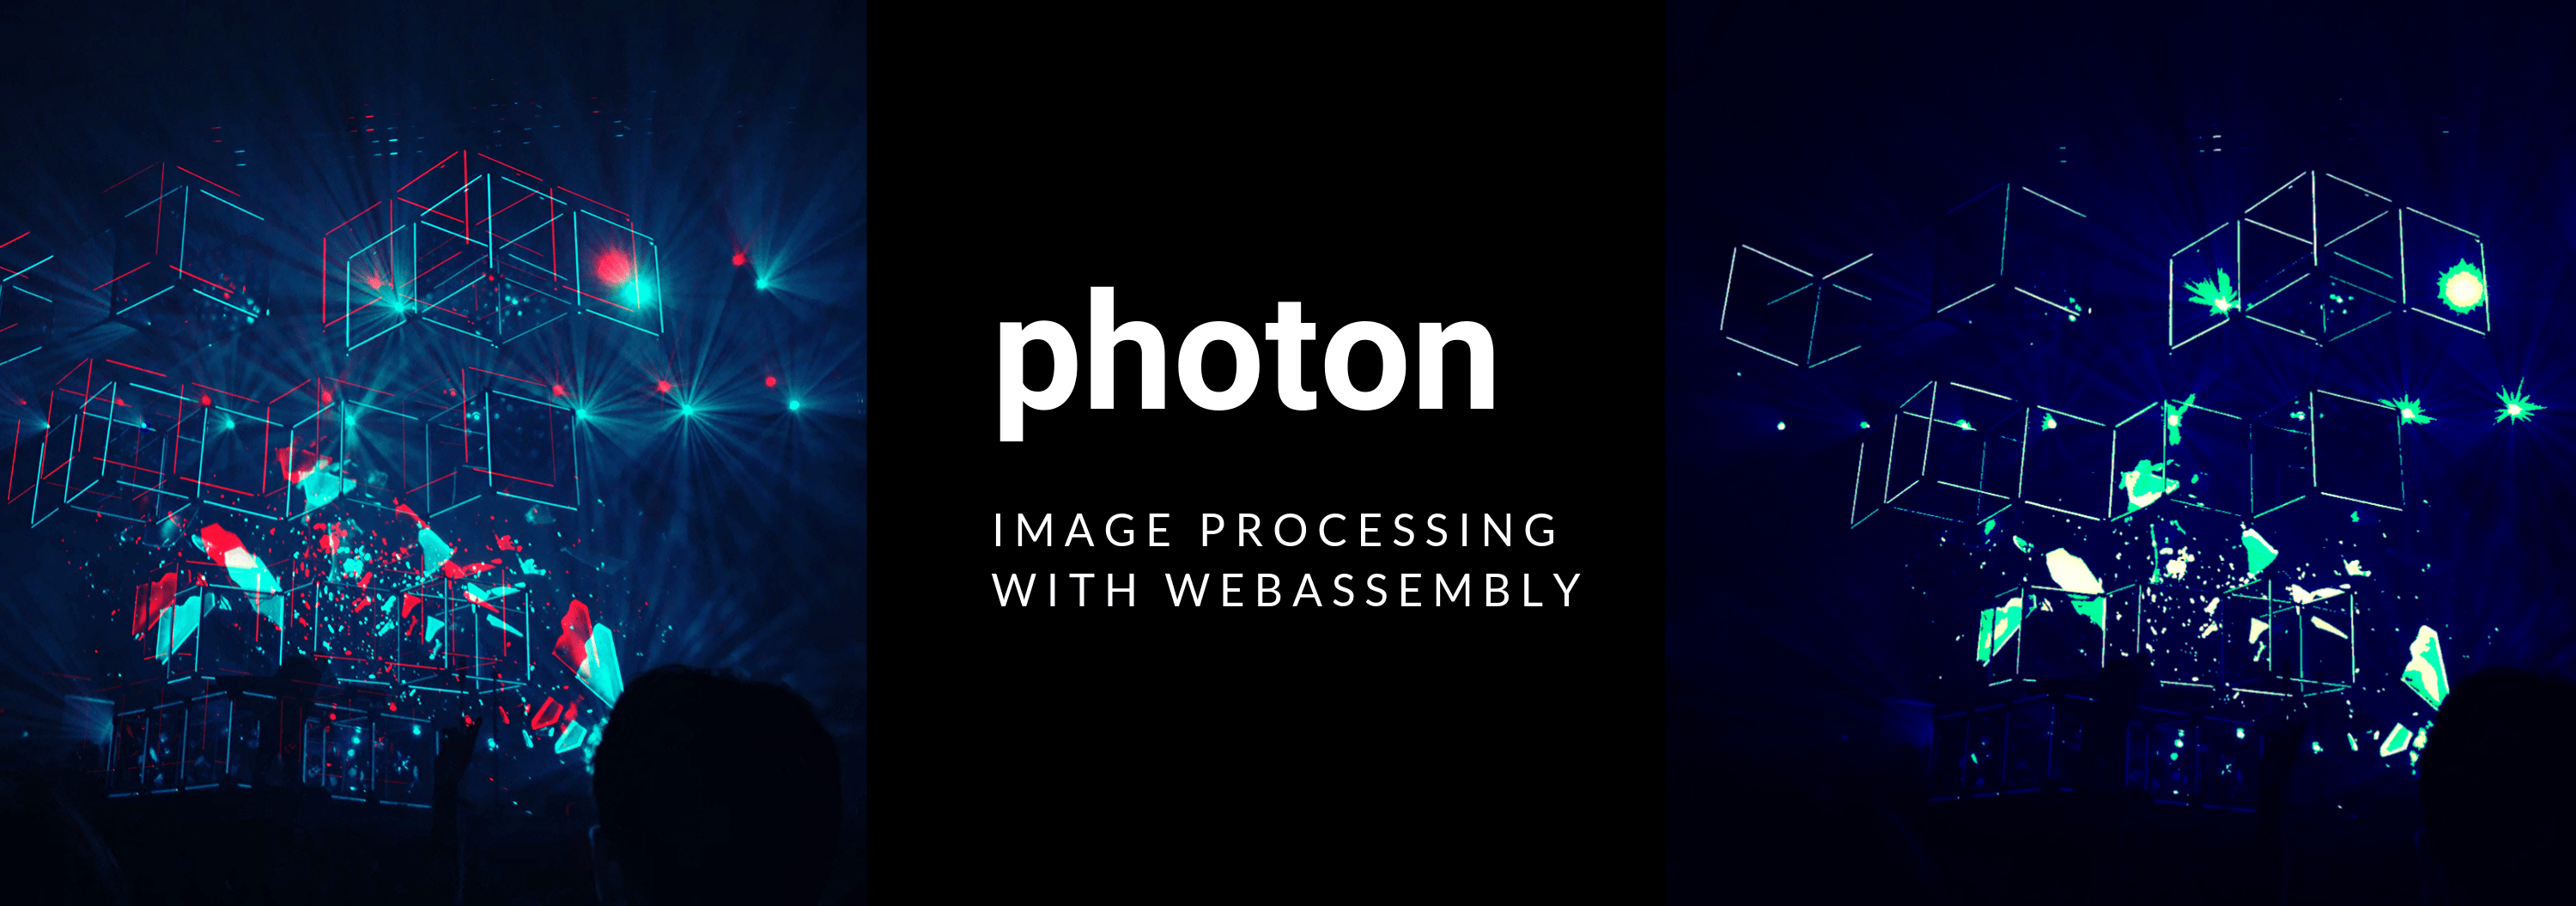 Photon banner, showing the Photon logo on a dark background